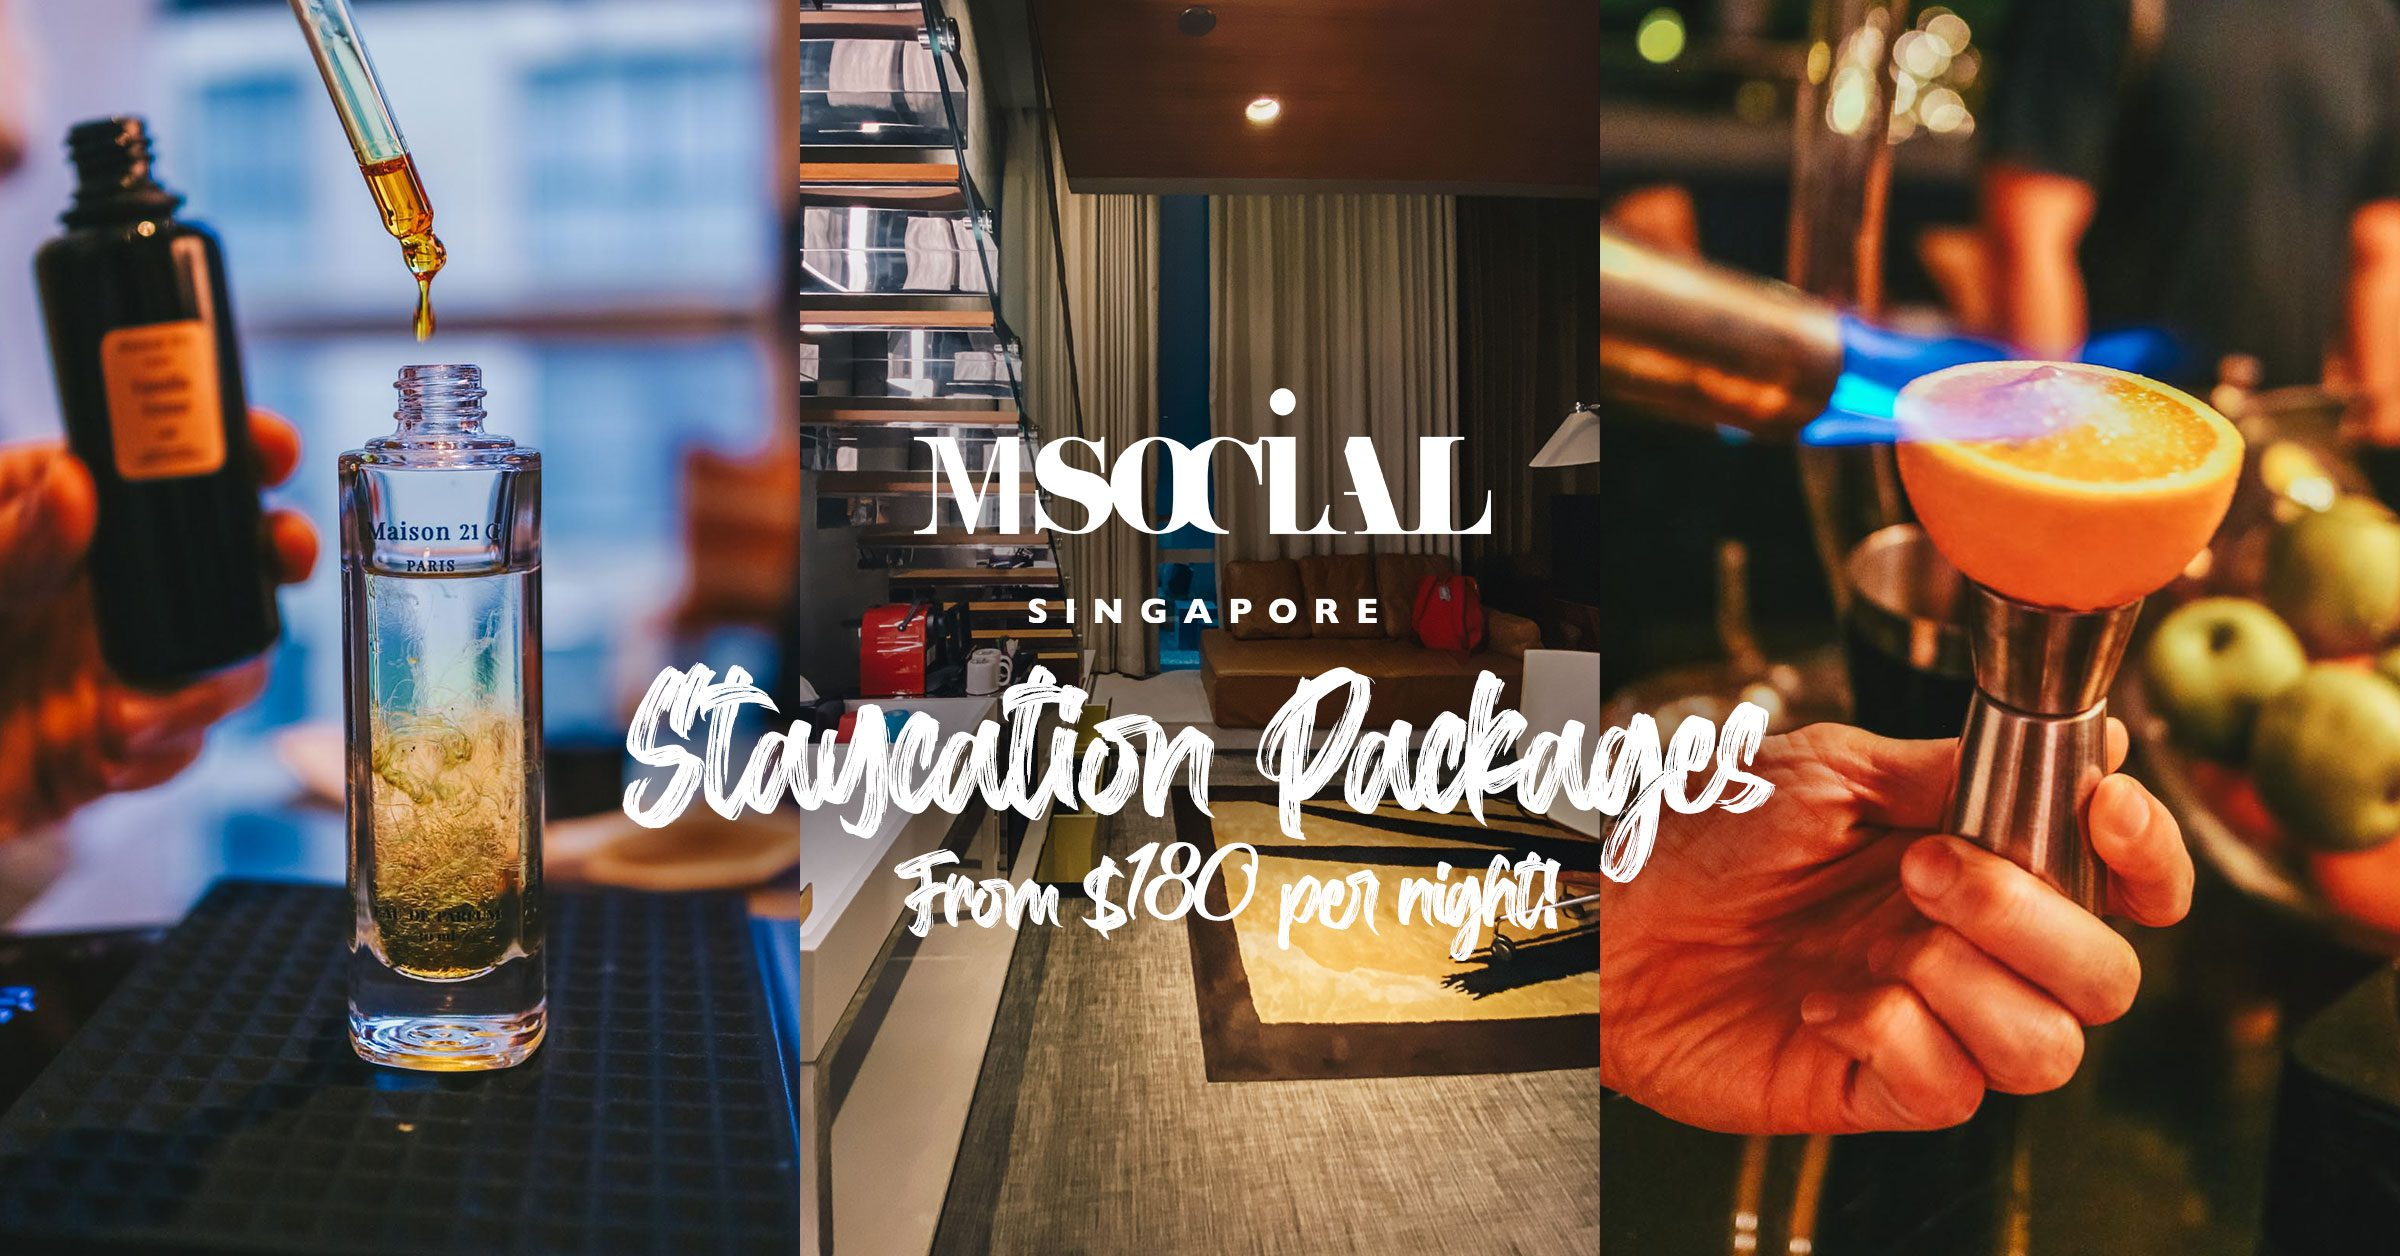 M-Social-Singapore-Staycation-Packages-2020-featured